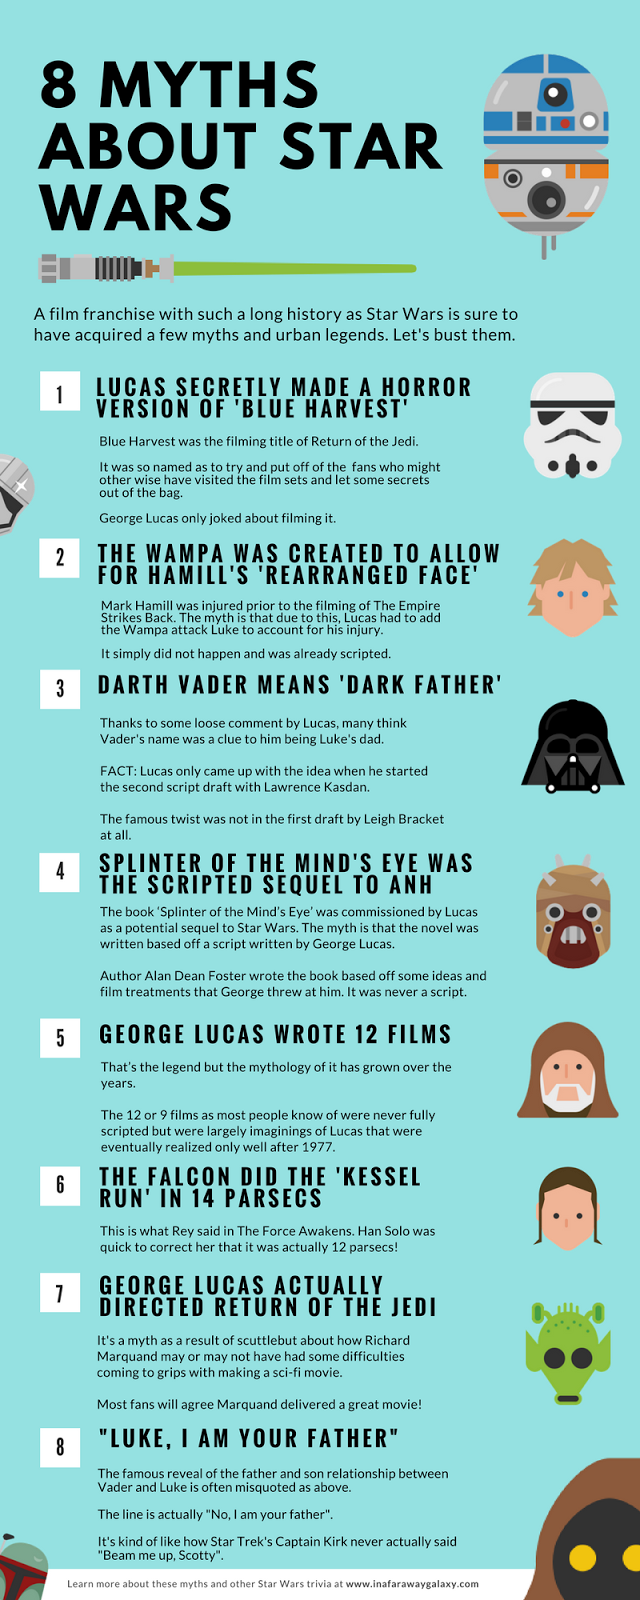 Star Wars movie myths busted